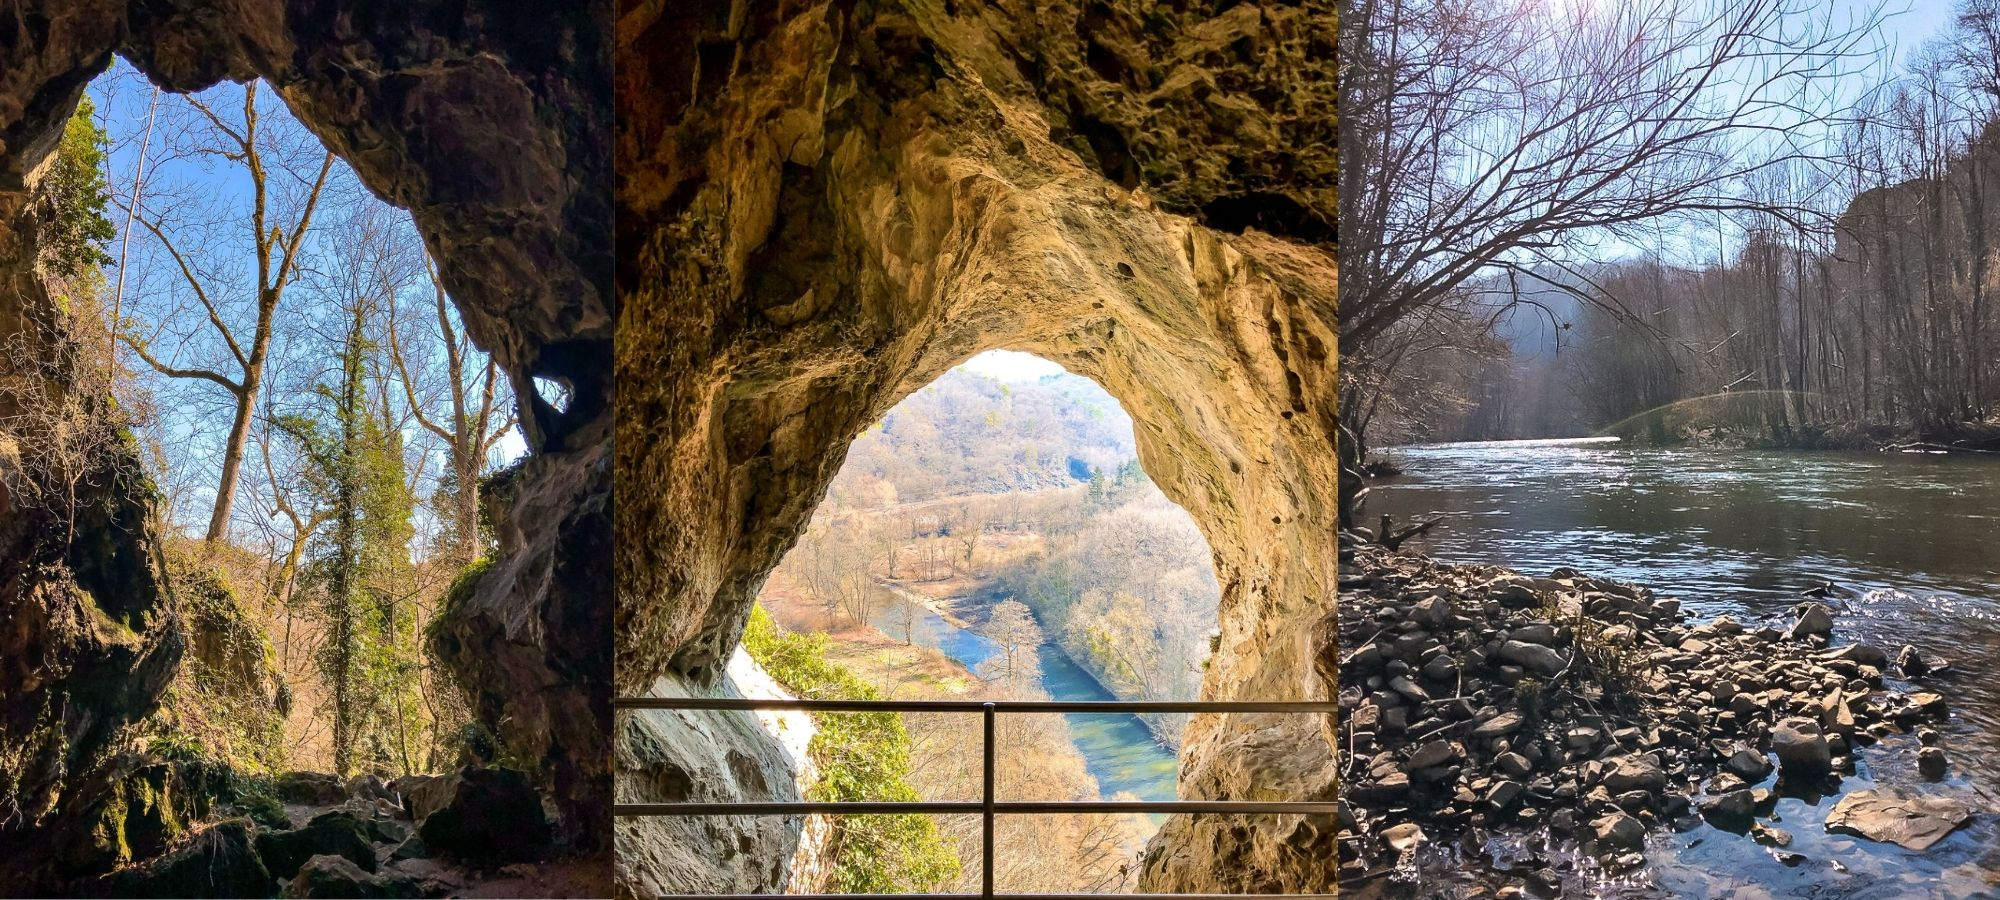 Left & Middle: view from the caves of Park Furfooz. Right: rocks in a river.